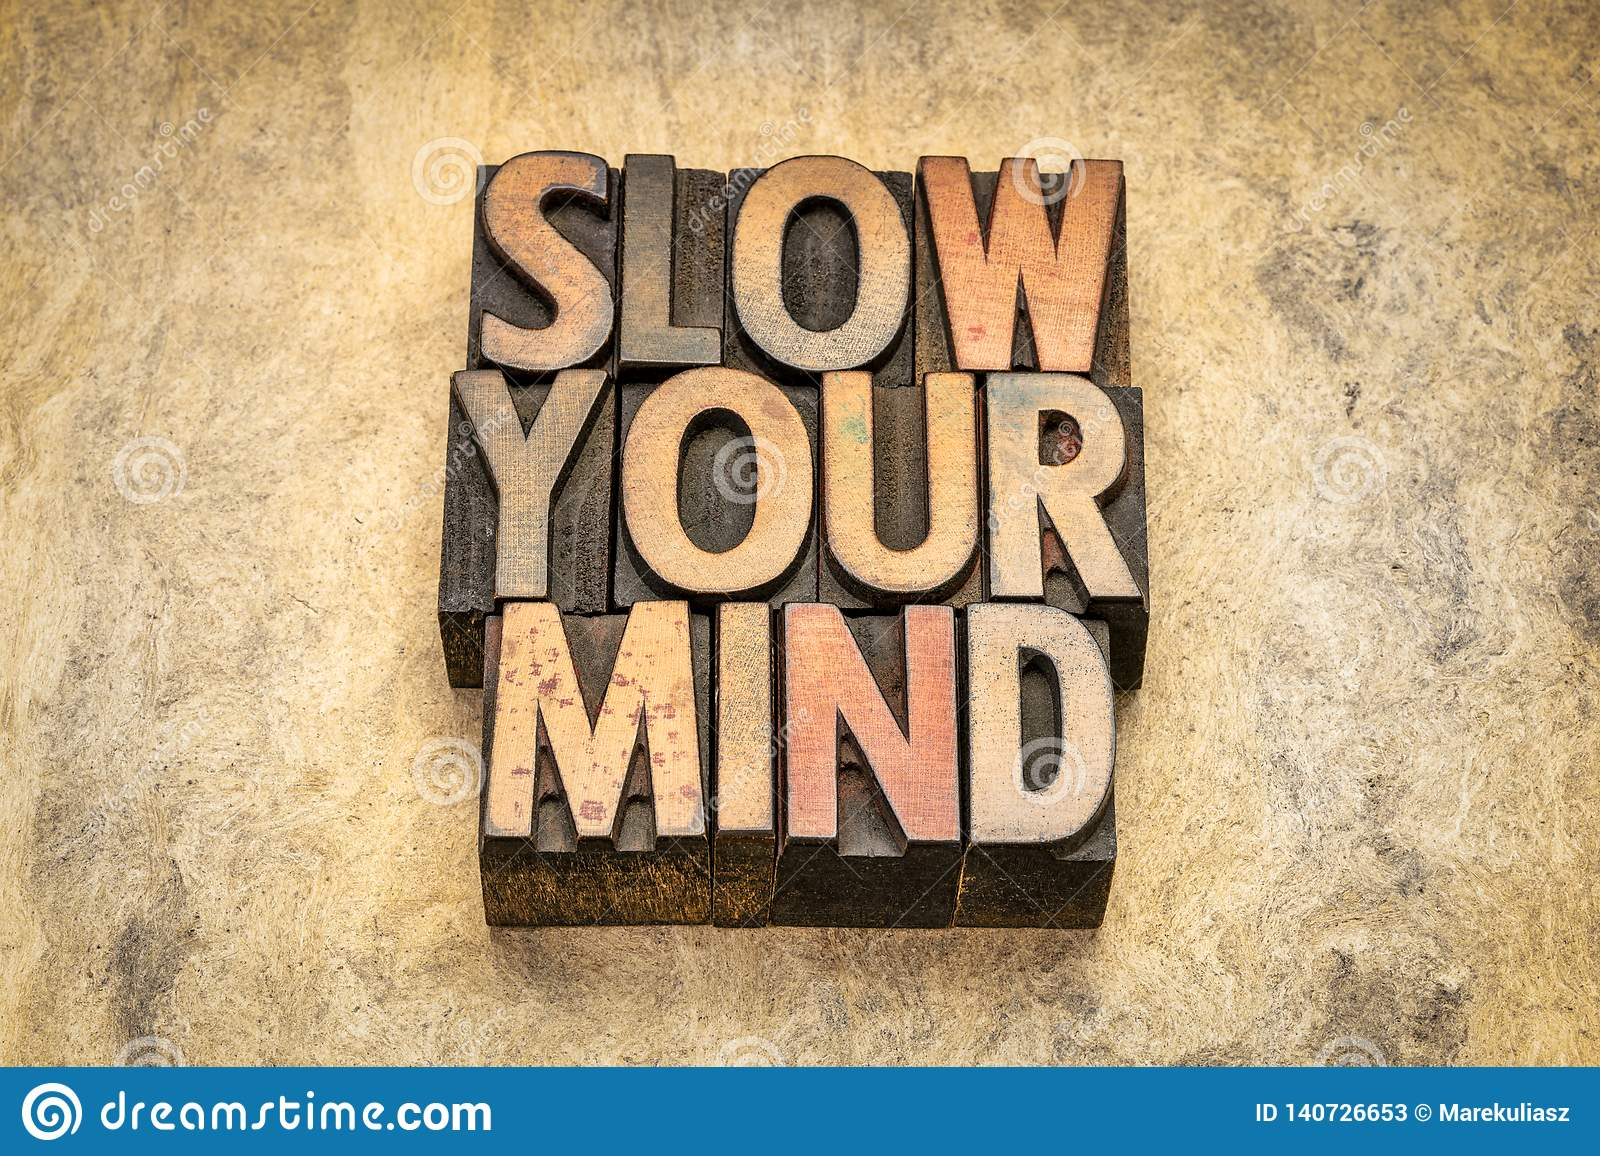 Slow your mind advice